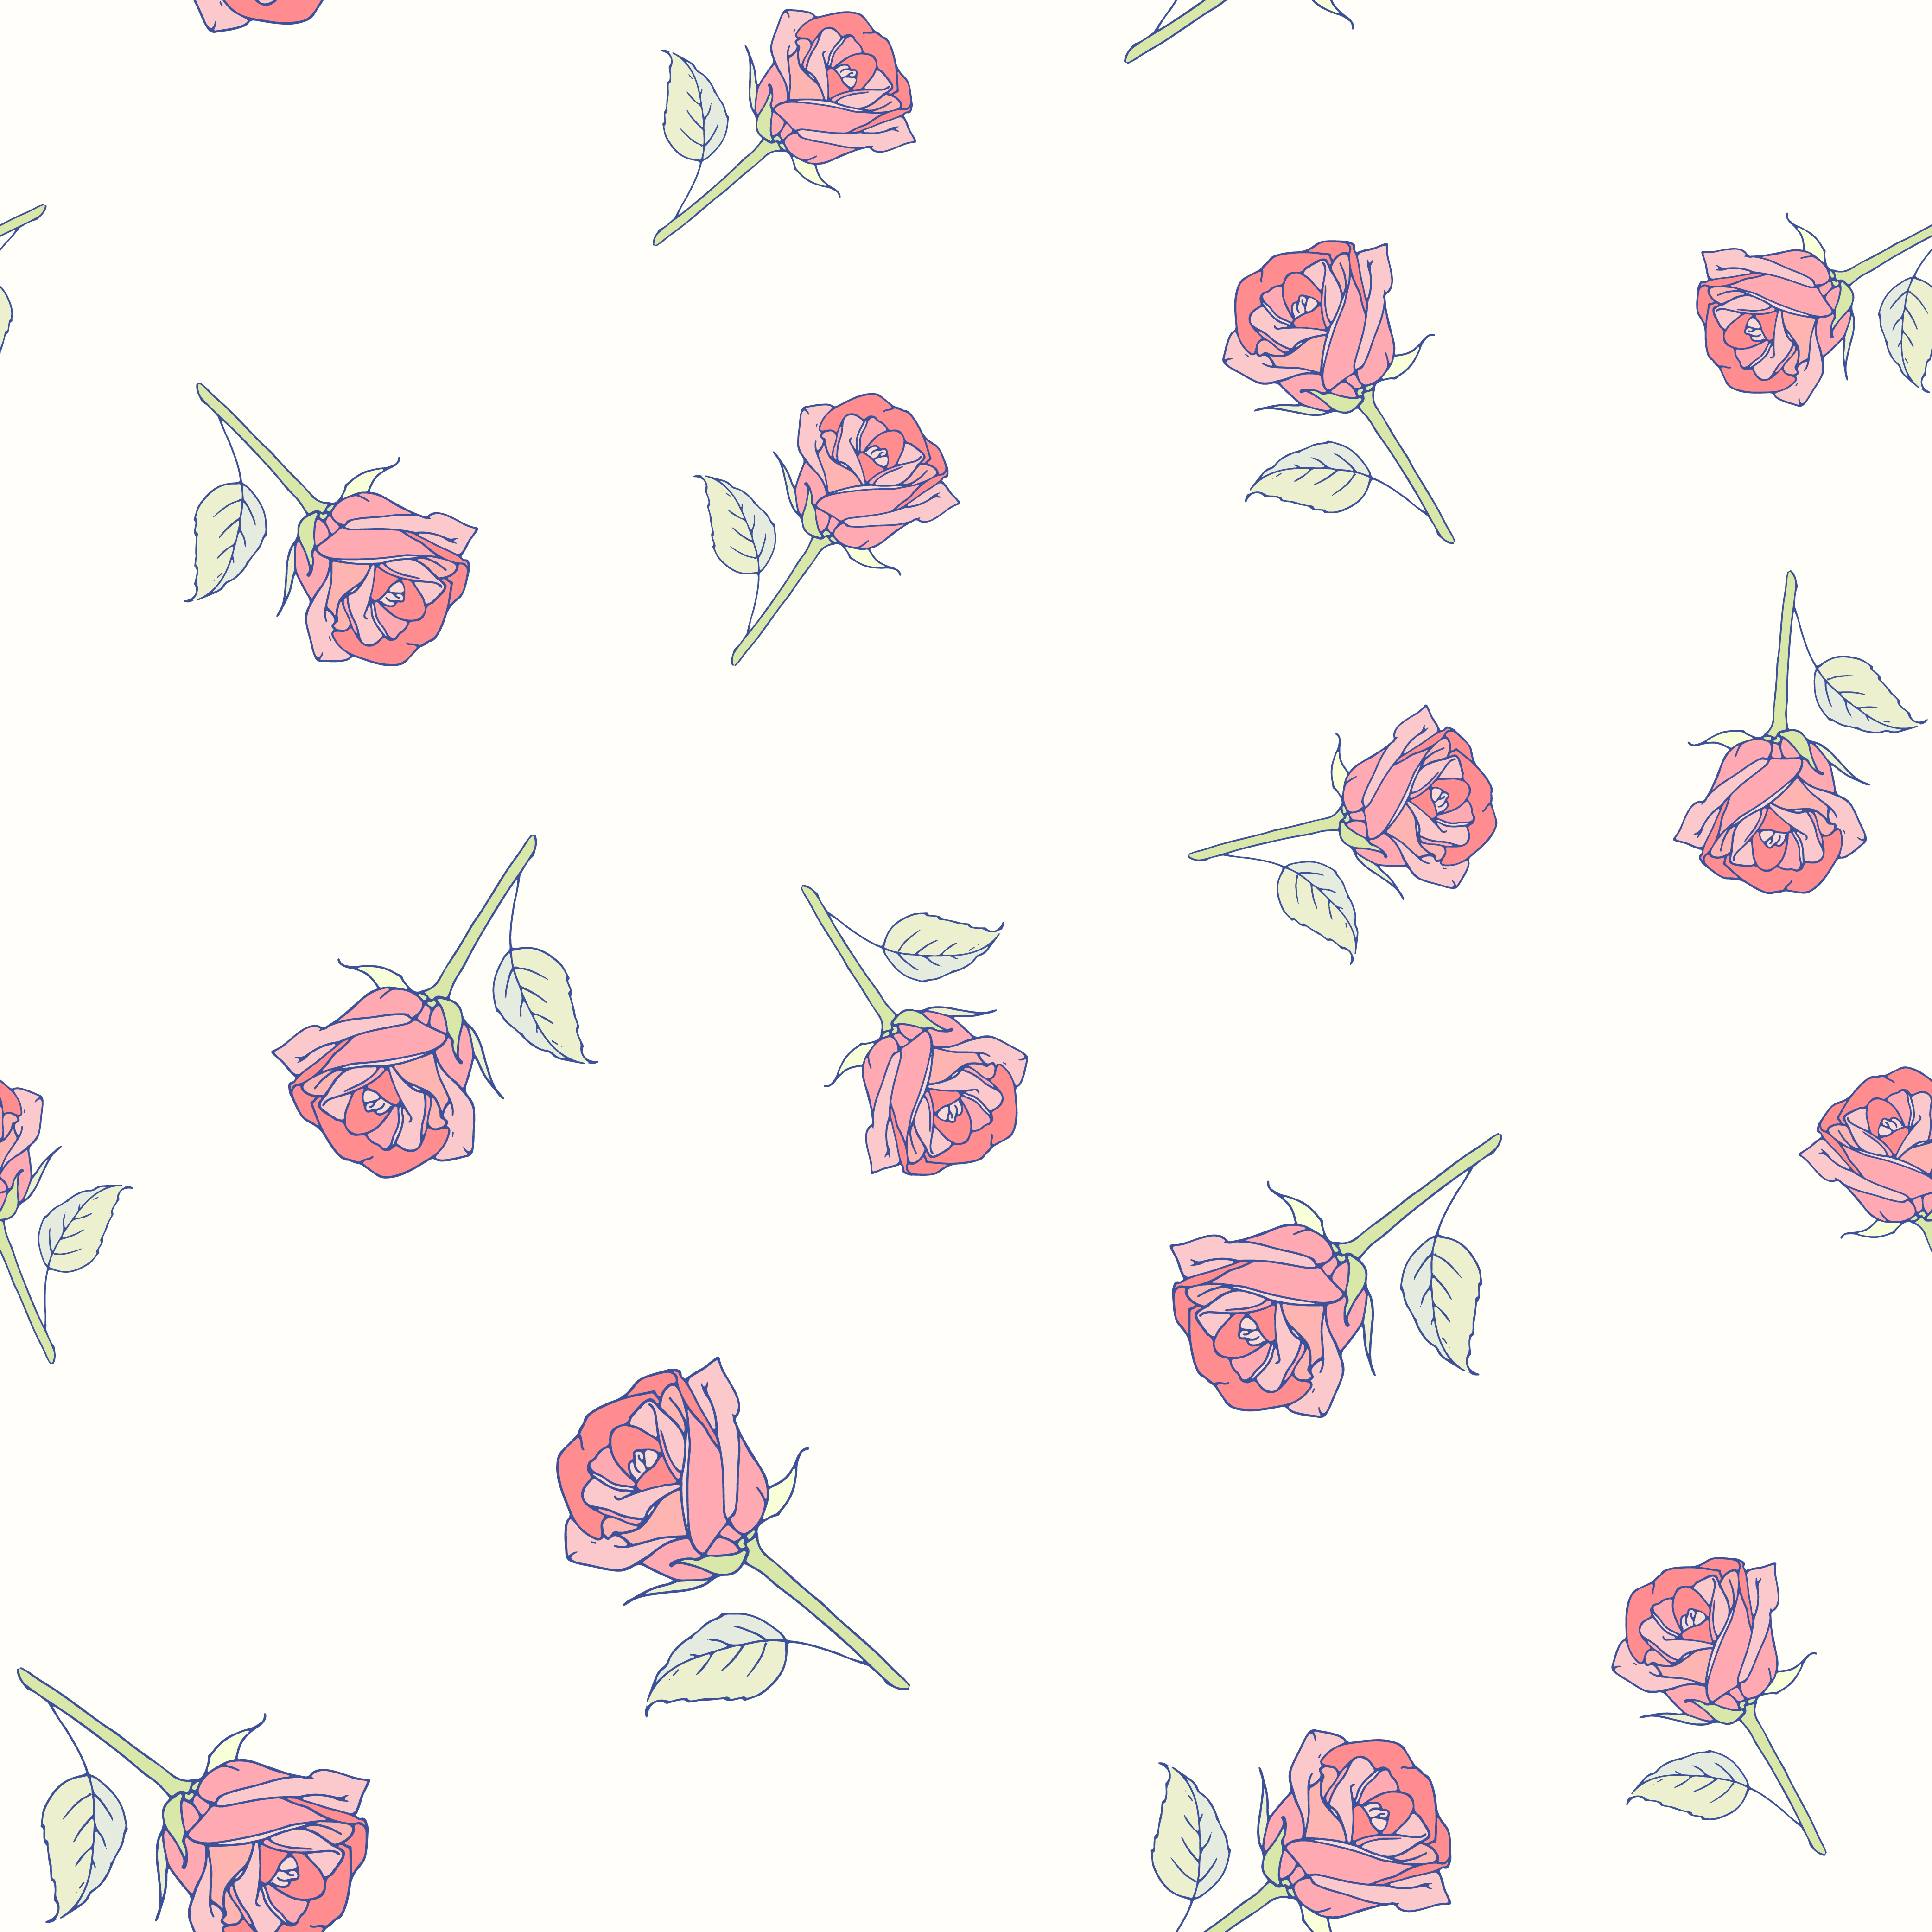 Hand Drawn Roses Seamless Pattern Download Free Vectors